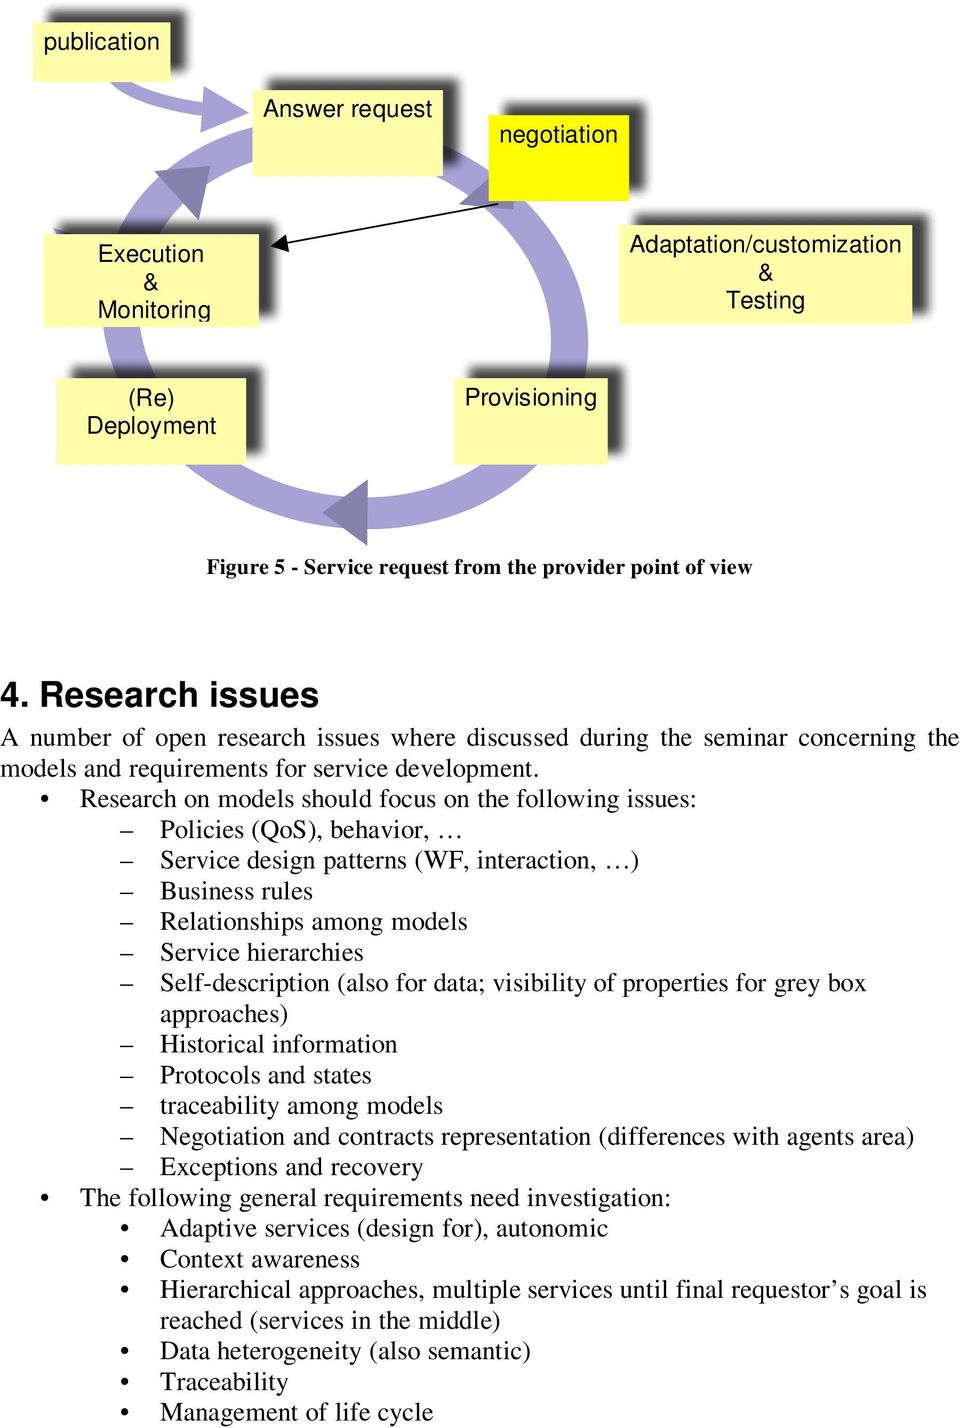 Research on models should focus on the following issues: Policies (QoS), behavior, Service design patterns (WF, interaction, ) Business rules Relationships among models Service hierarchies